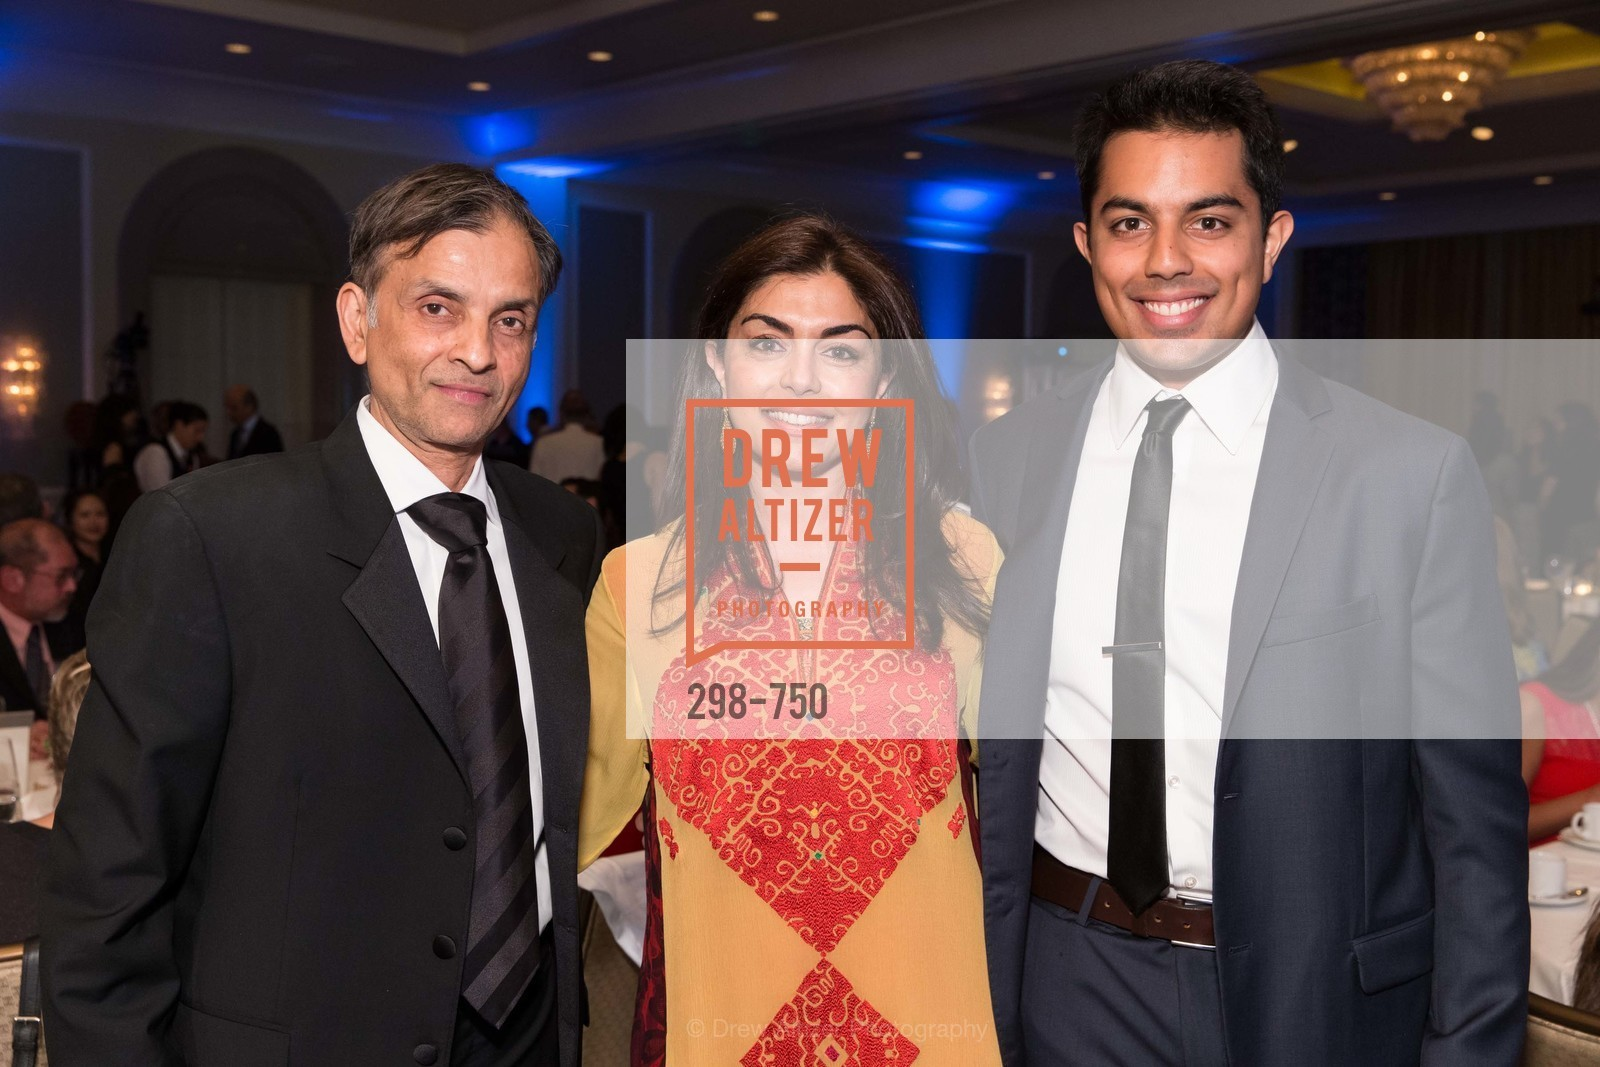 Vivek Ranadive, Sara Abbasi, Faiz Abbasi, WORLD AFFAIRS COUNCIL Awards Dinner, US, May 26th, 2015,Drew Altizer, Drew Altizer Photography, full-service agency, private events, San Francisco photographer, photographer california